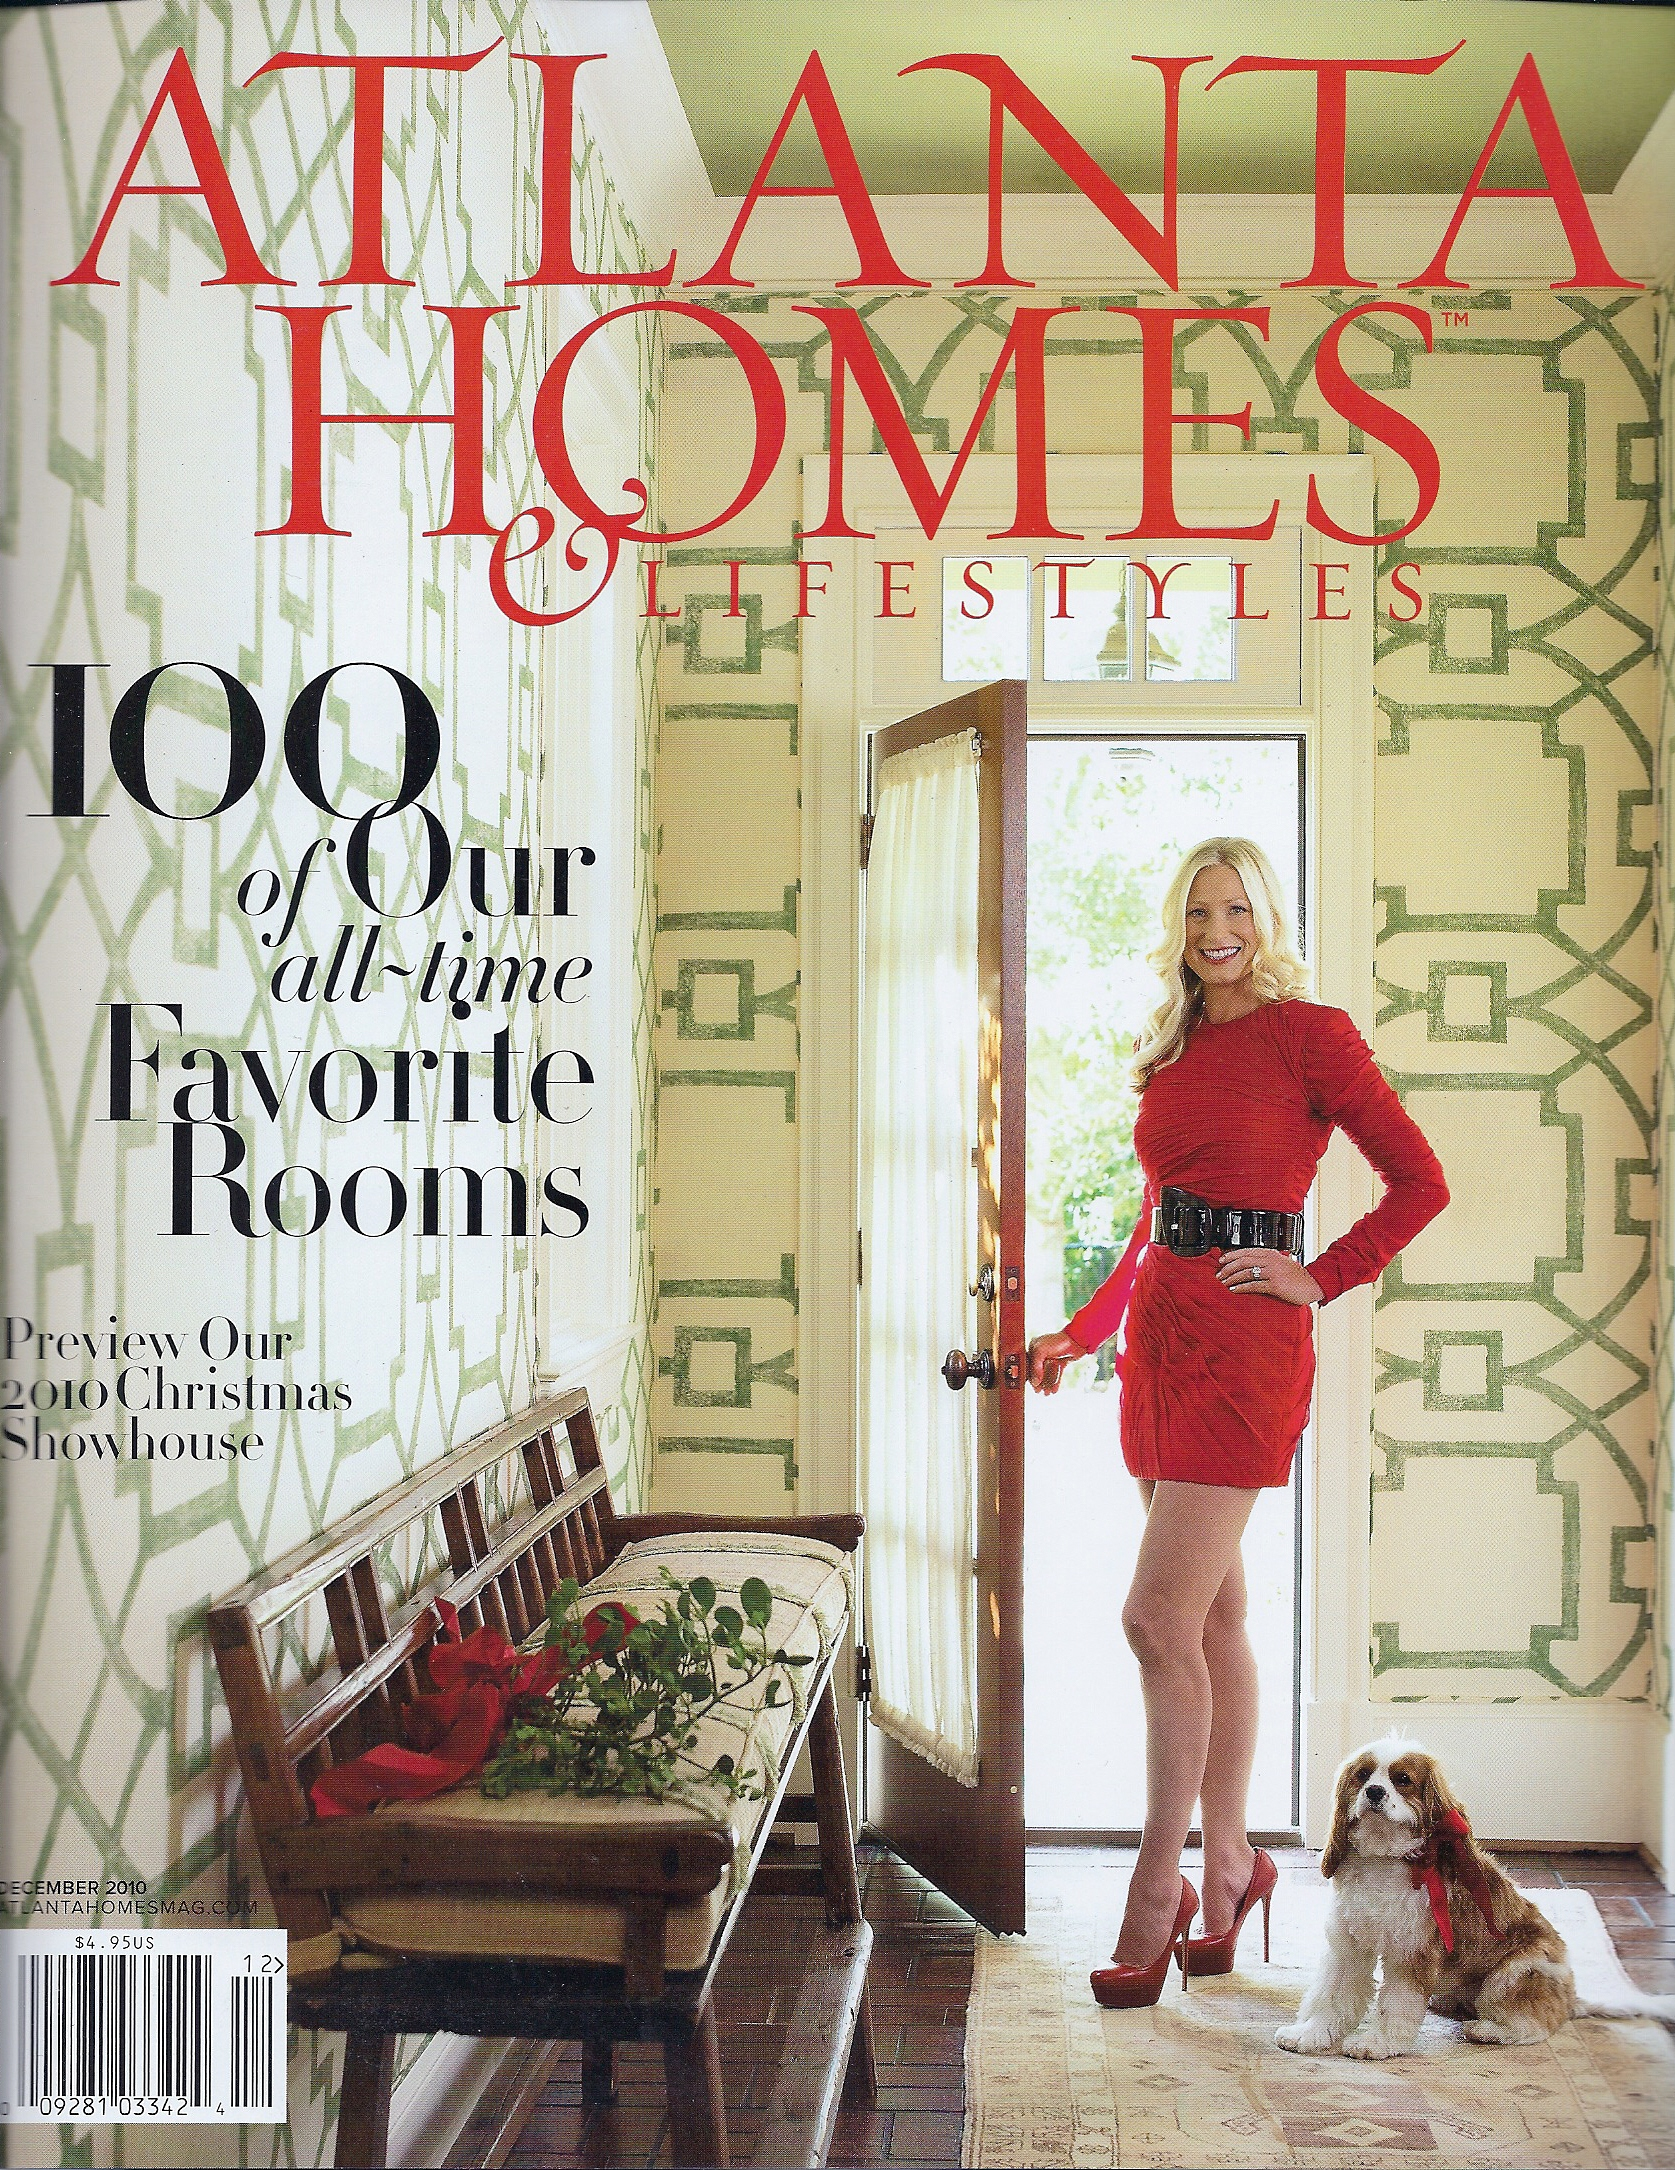 Atlanta Homes & LifeStyles December 2010